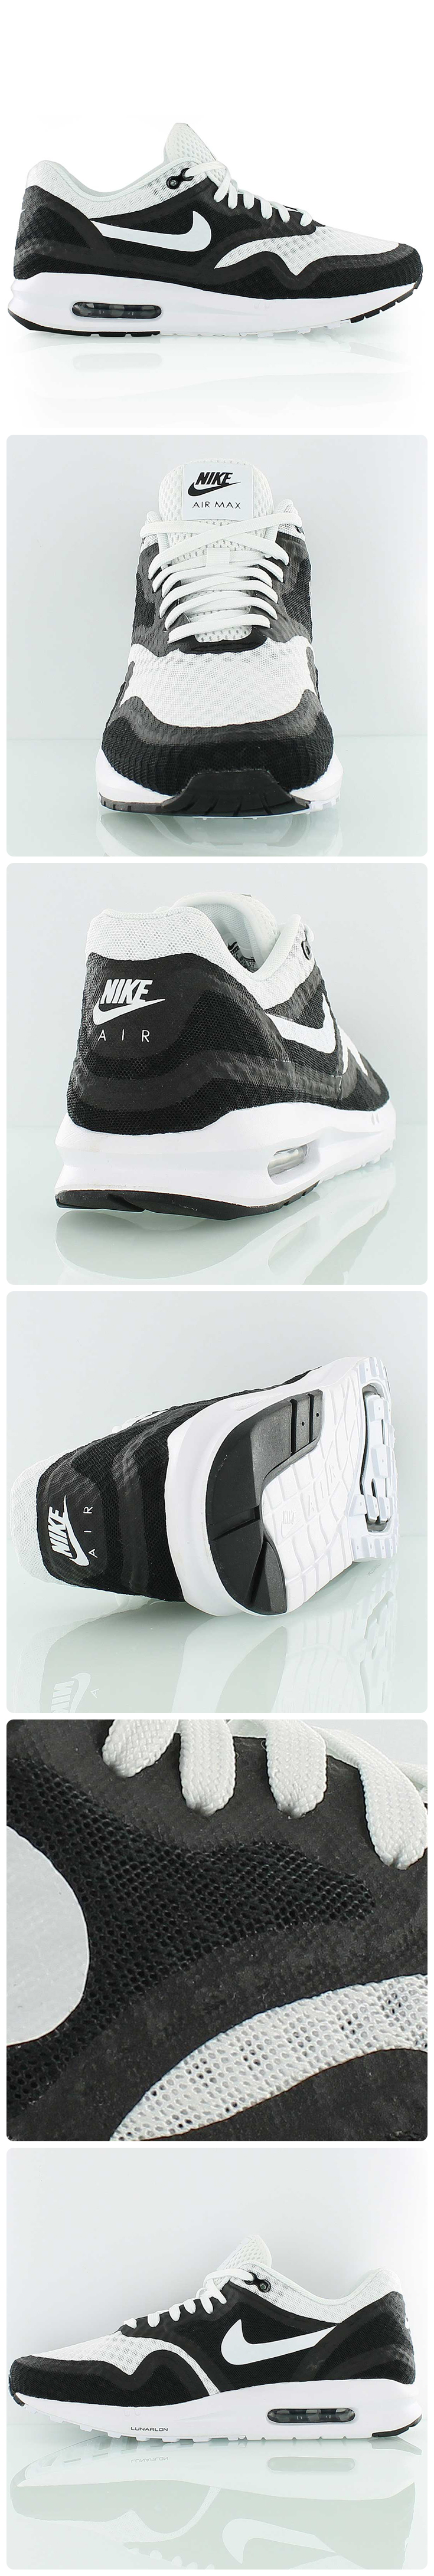 wholesale dealer 6cf63 5b8cd Are you ready for the smoothest ride of the season  Nike Air Max Lunar 1 BR  white black. With the iconic Air unit plus a soft Lunarlon midsole.